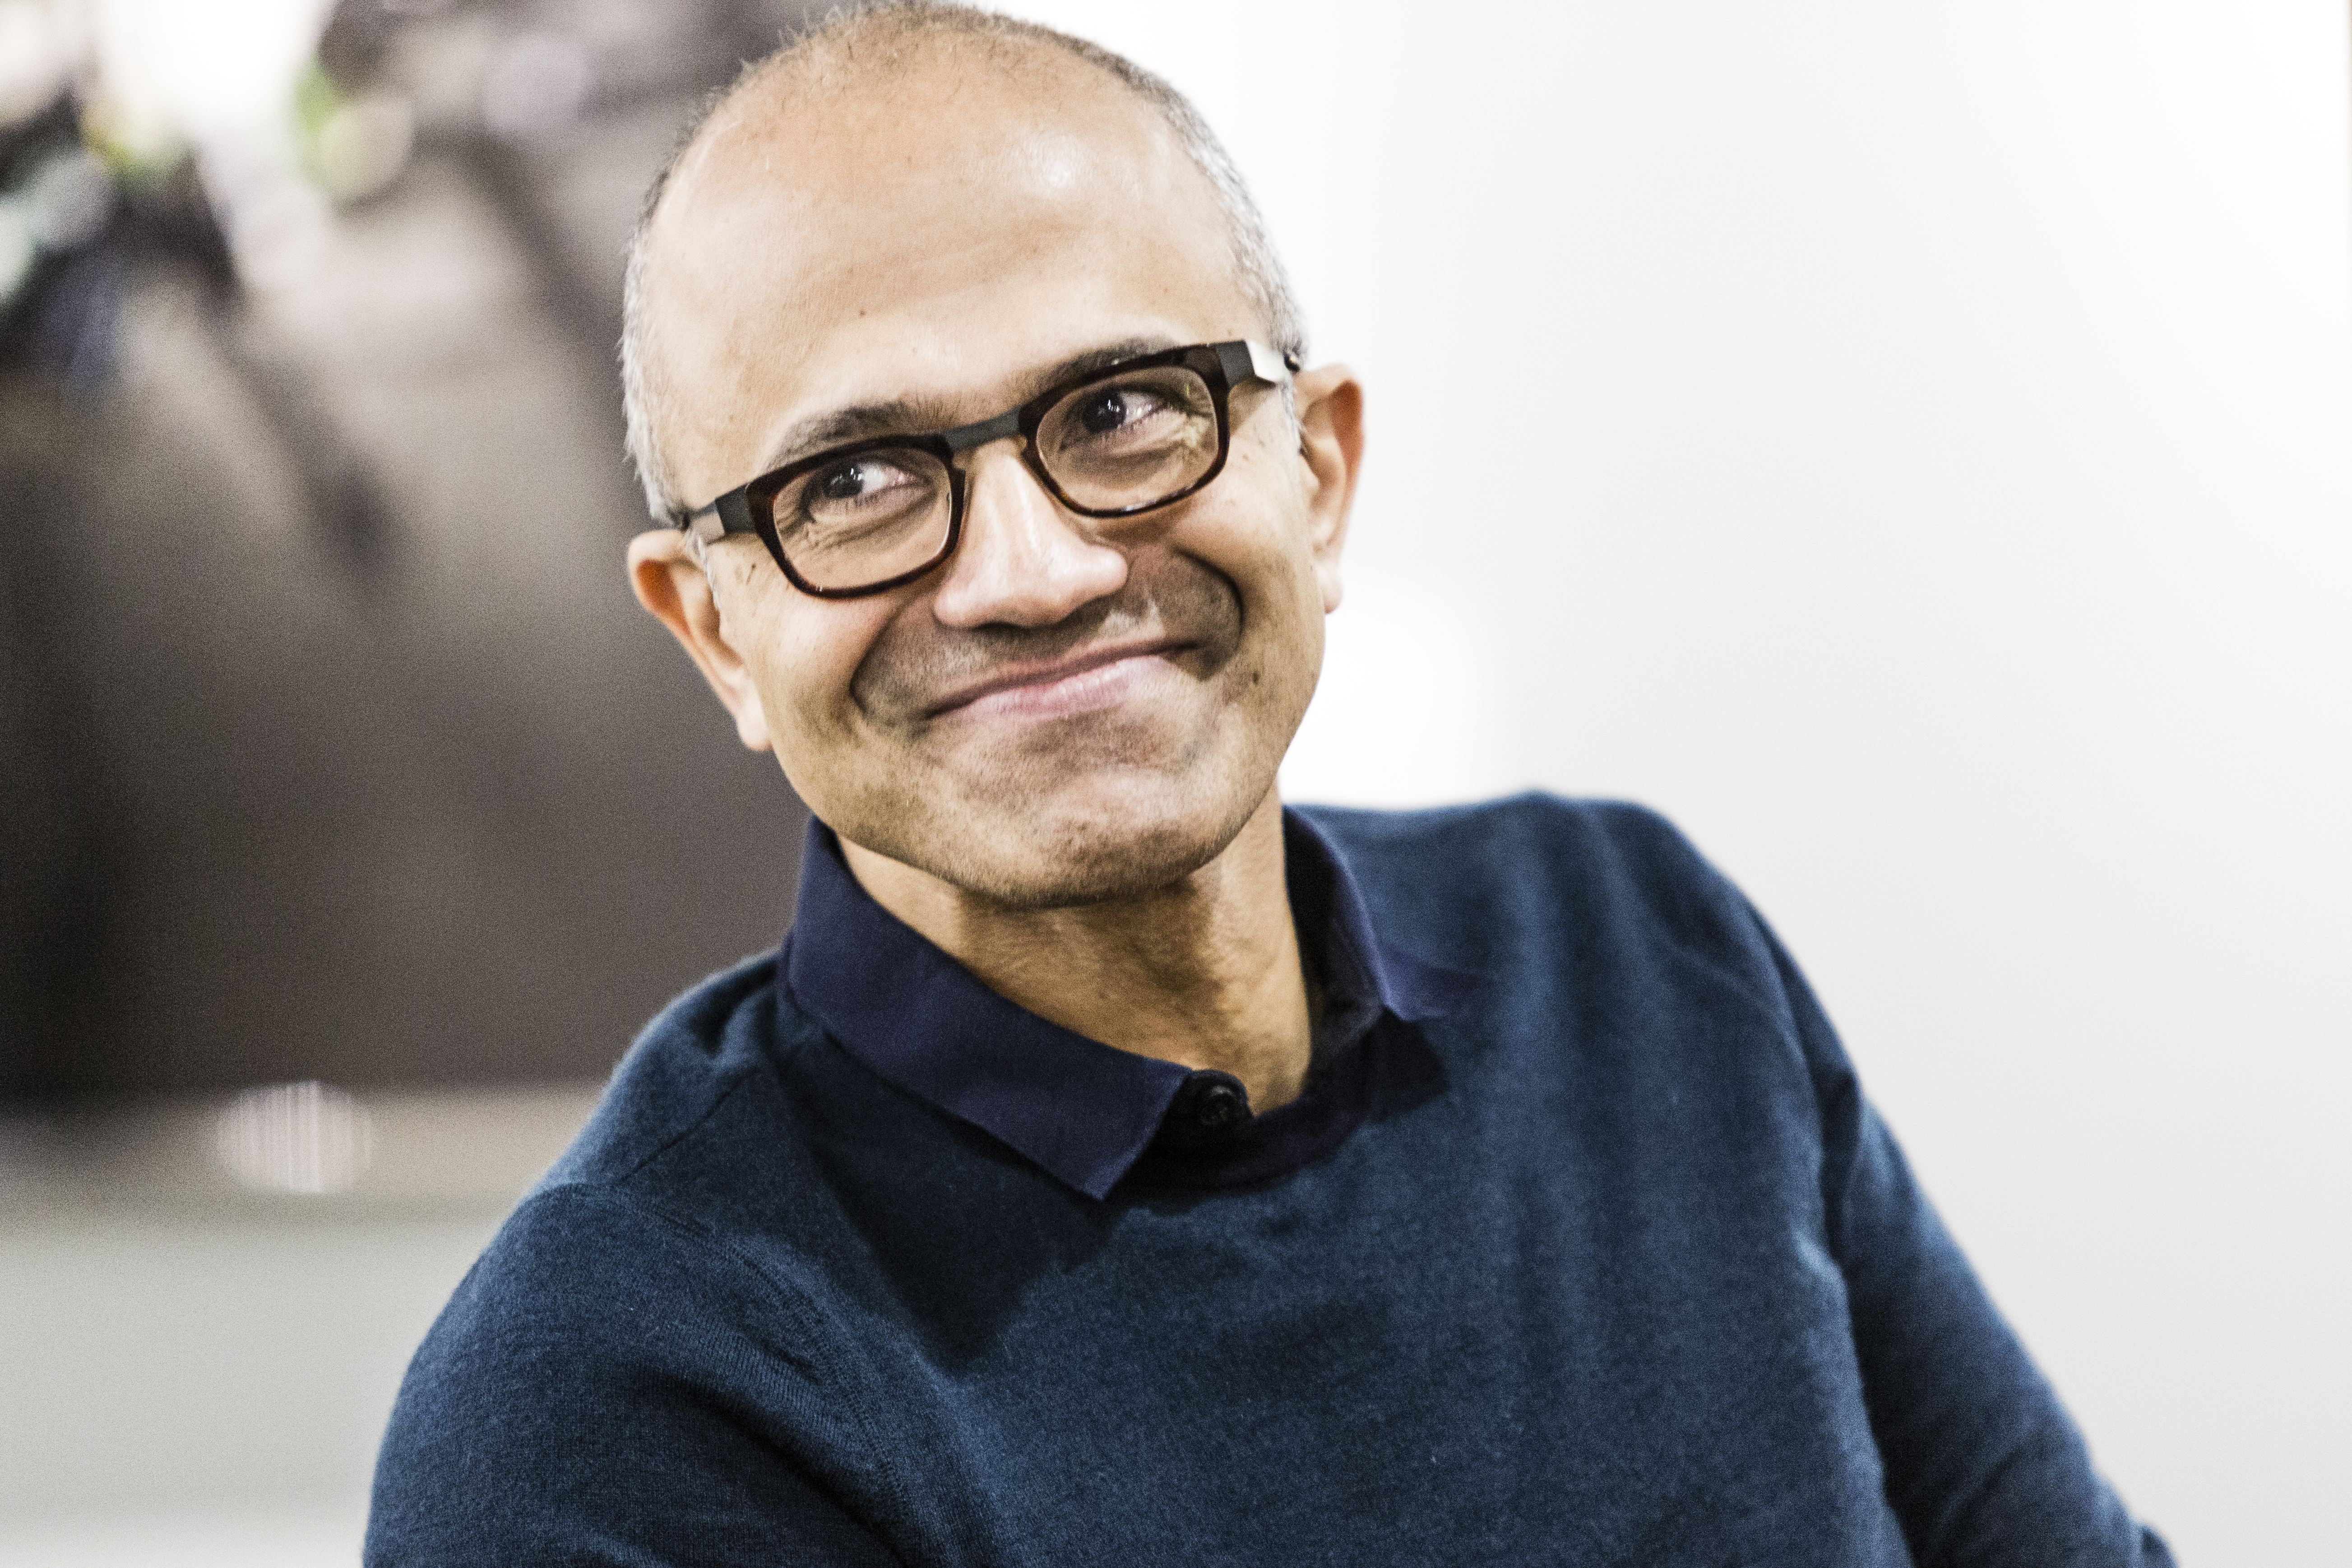 My hope is for an India where an immigrant can aspire to find a prosperous start-up or lead a multinational corporation benefitting Indian society and the economy at large, Microsoft CEO Satya Nadella said.